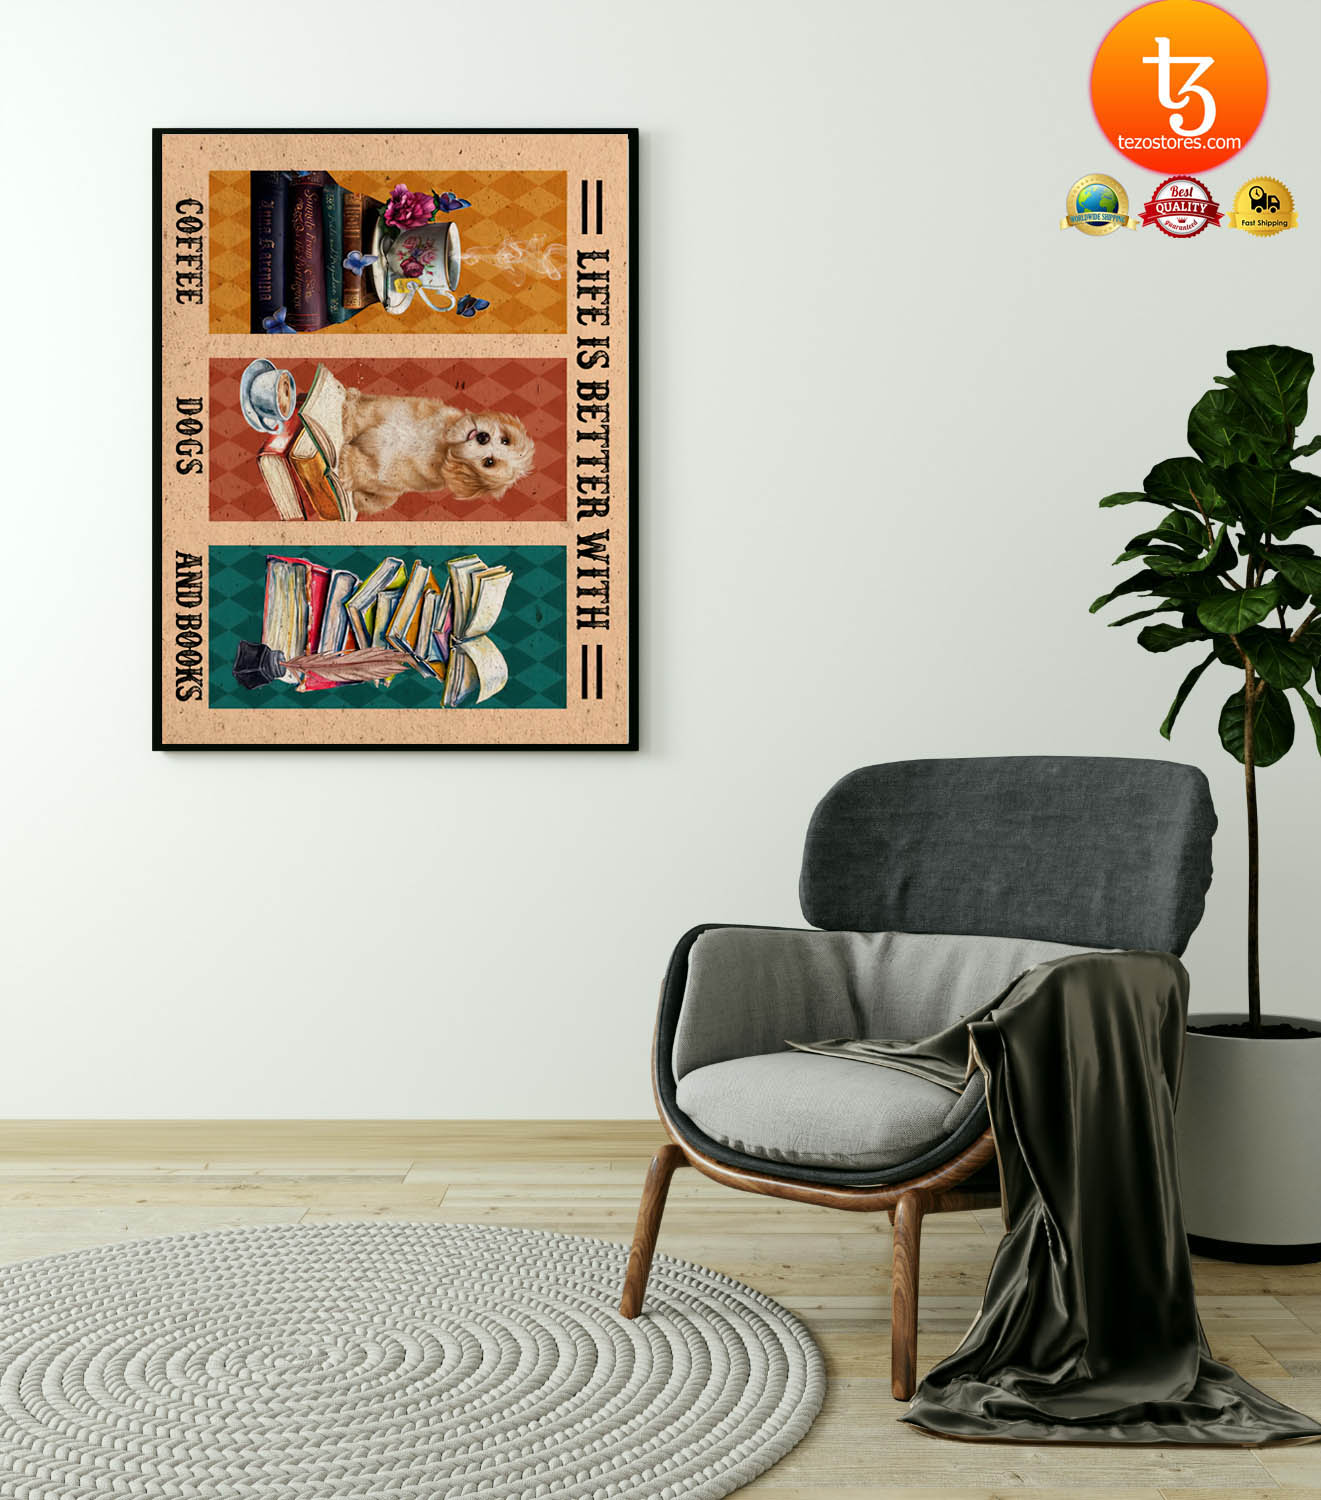 Life is better with coffee dogs and books poster 21